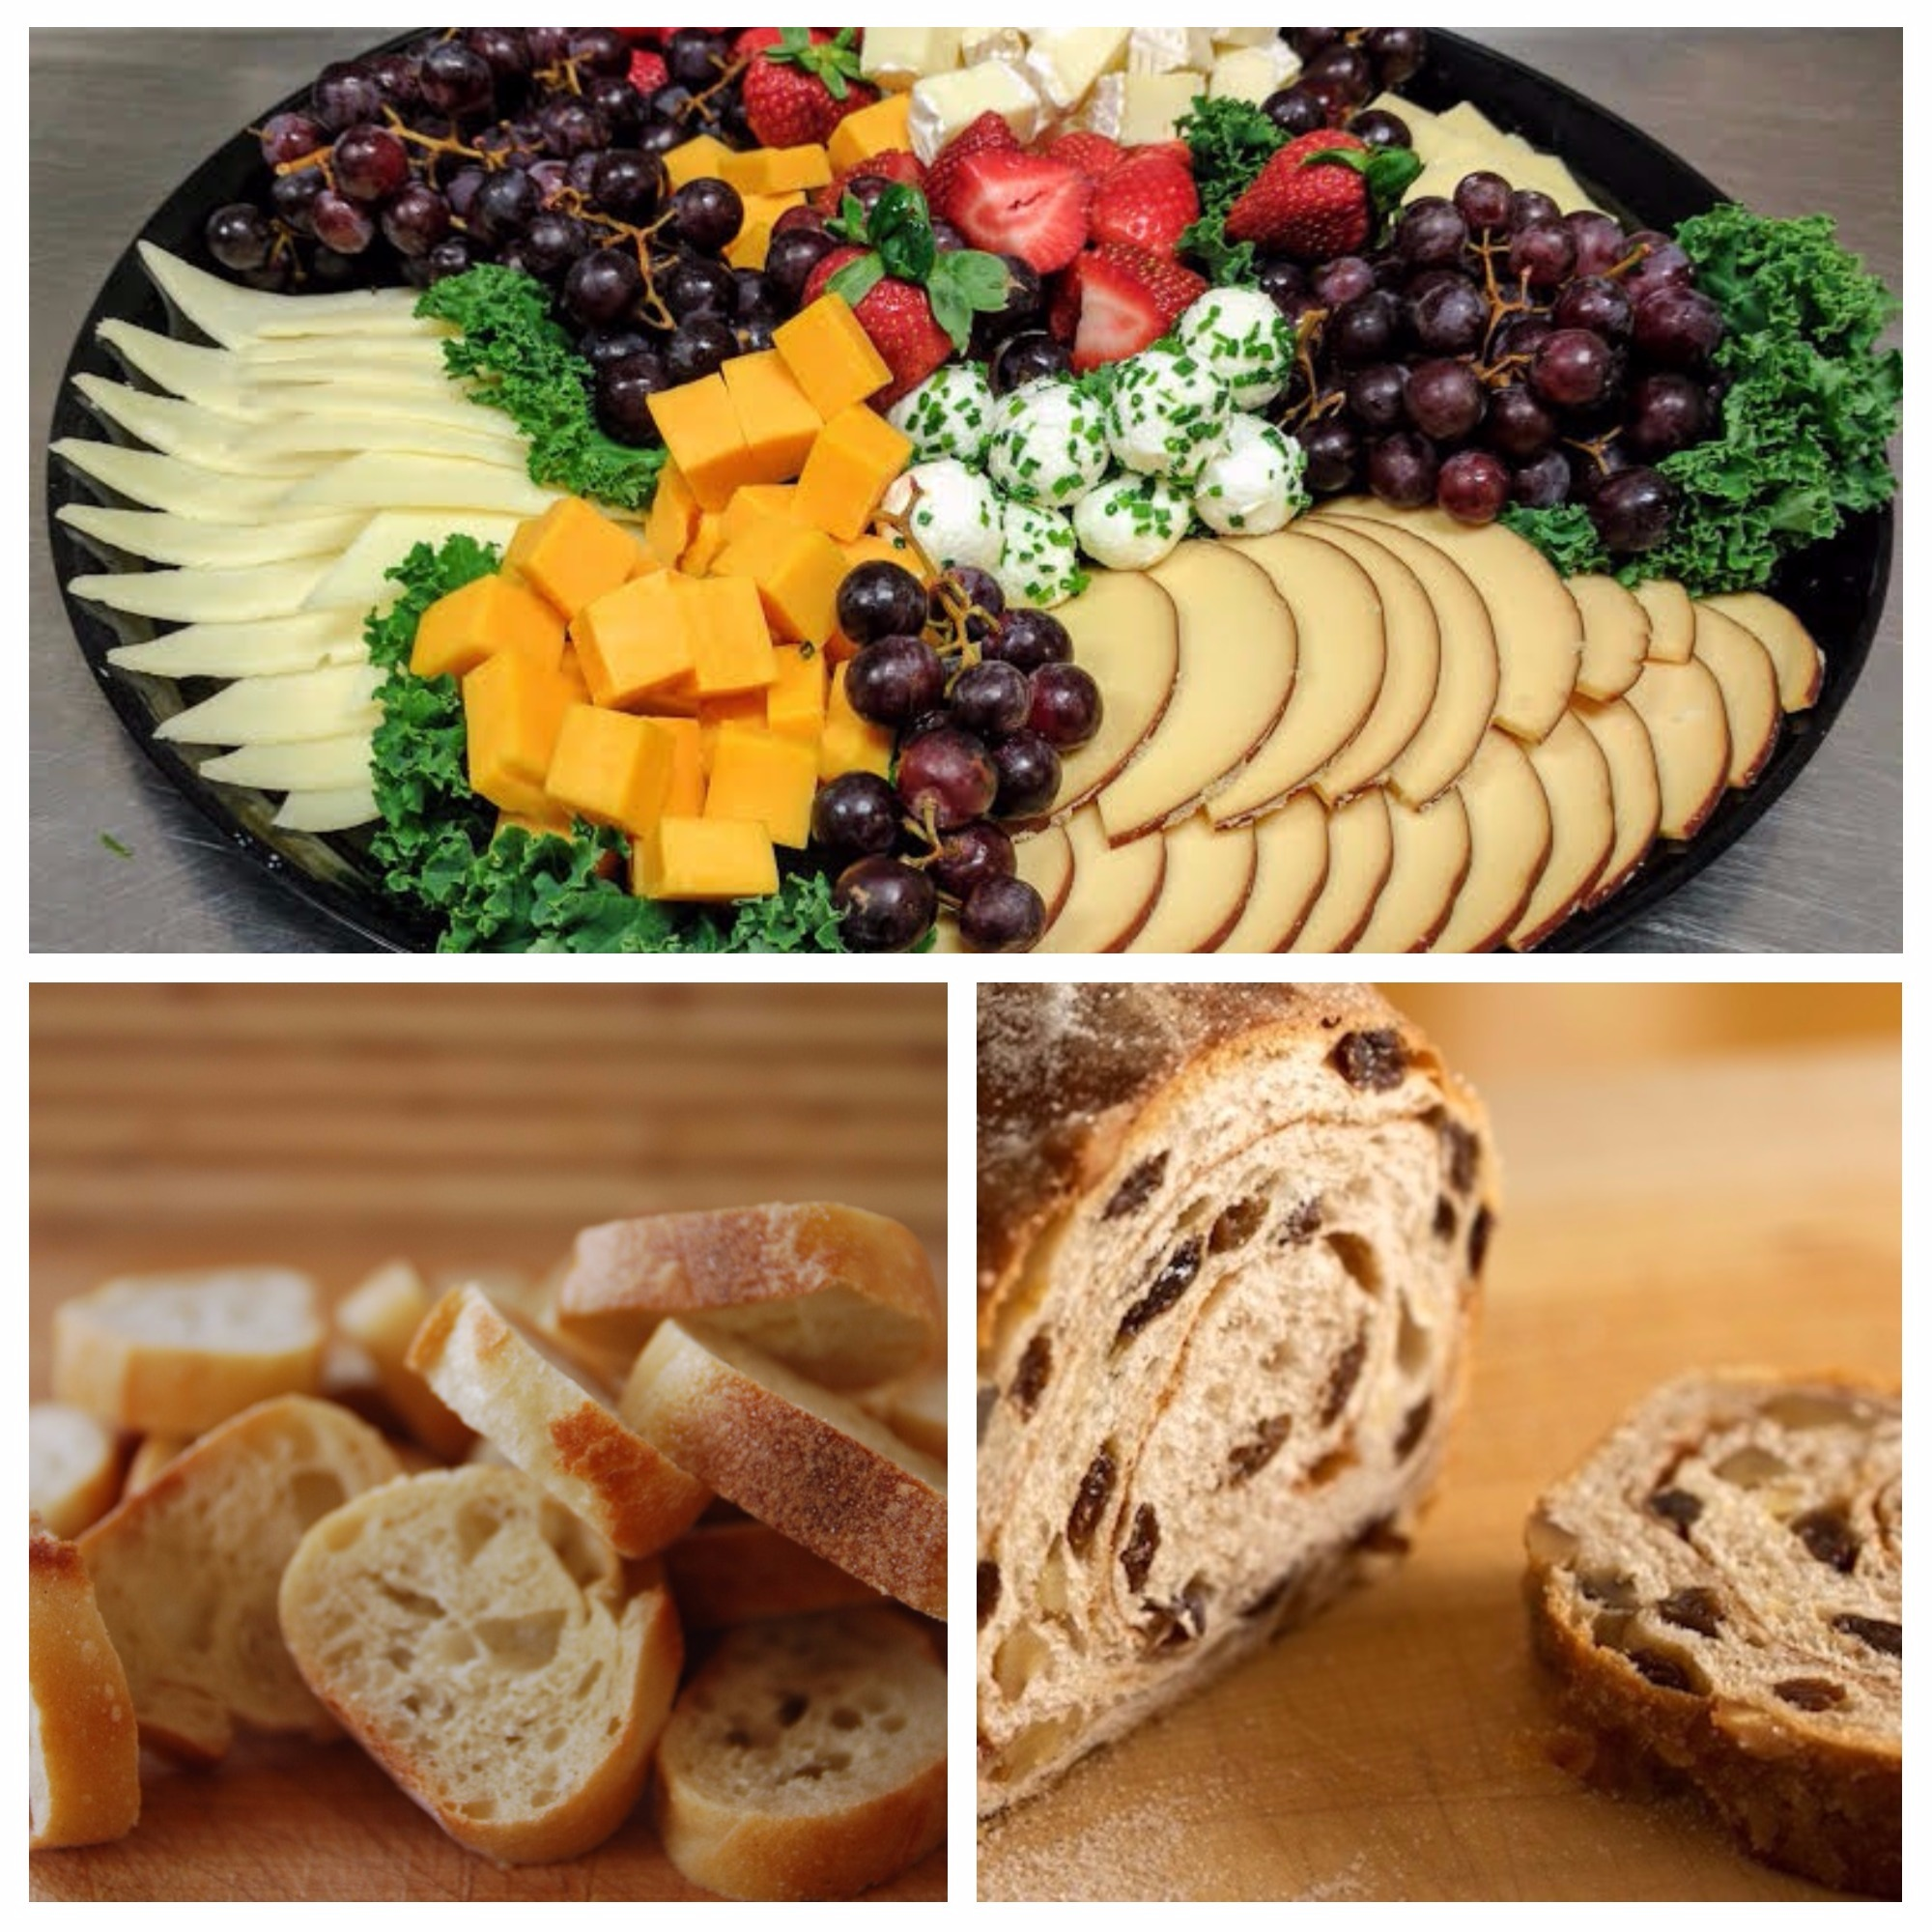 Signature Cheese Platter-Snack Platters: NYC Drop-off Catering